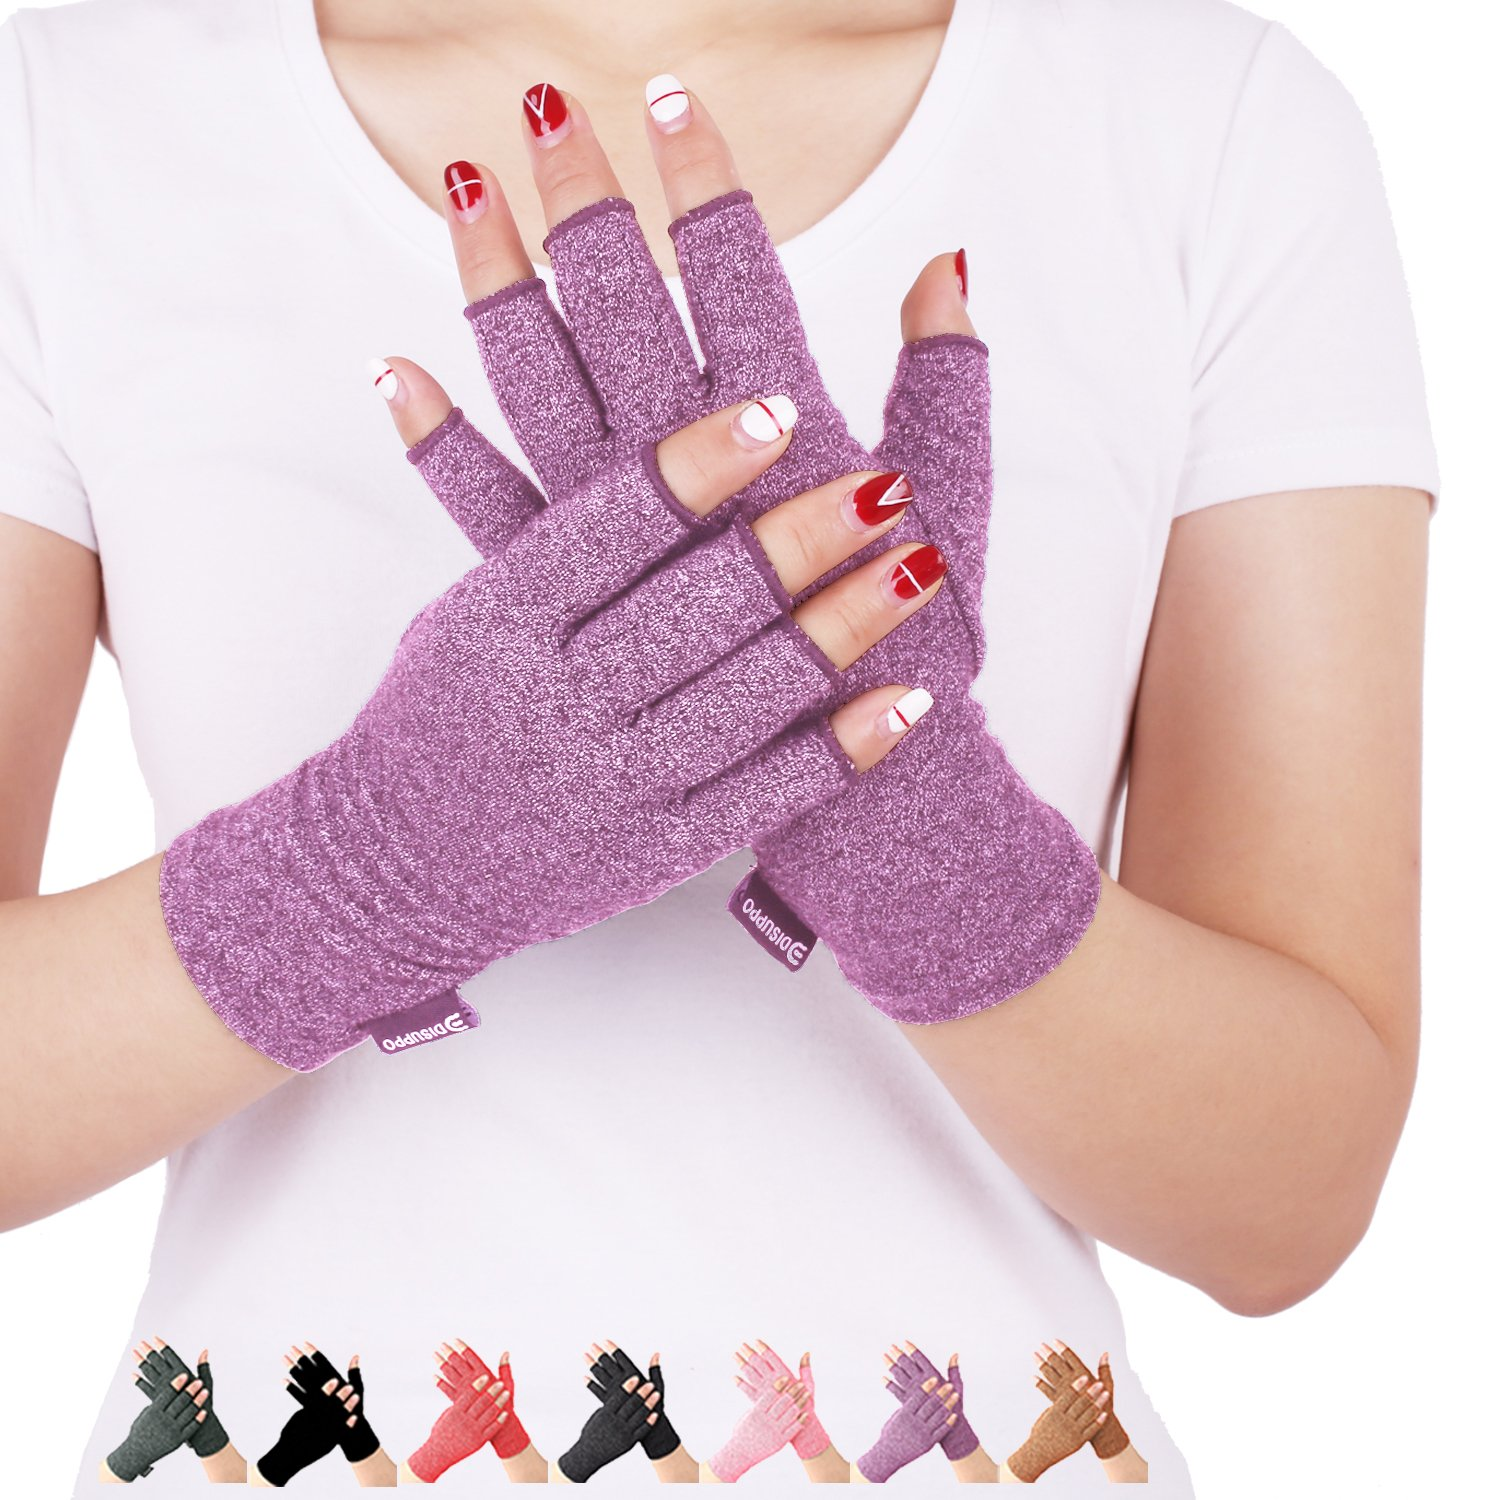 Arthritis Compression Gloves Relieve Pain from Rheumatoid, RSI,Carpal Tunnel, Hand Gloves Fingerless for Computer Typing and Dailywork, Support For Hands And Joints (Purple, Large)